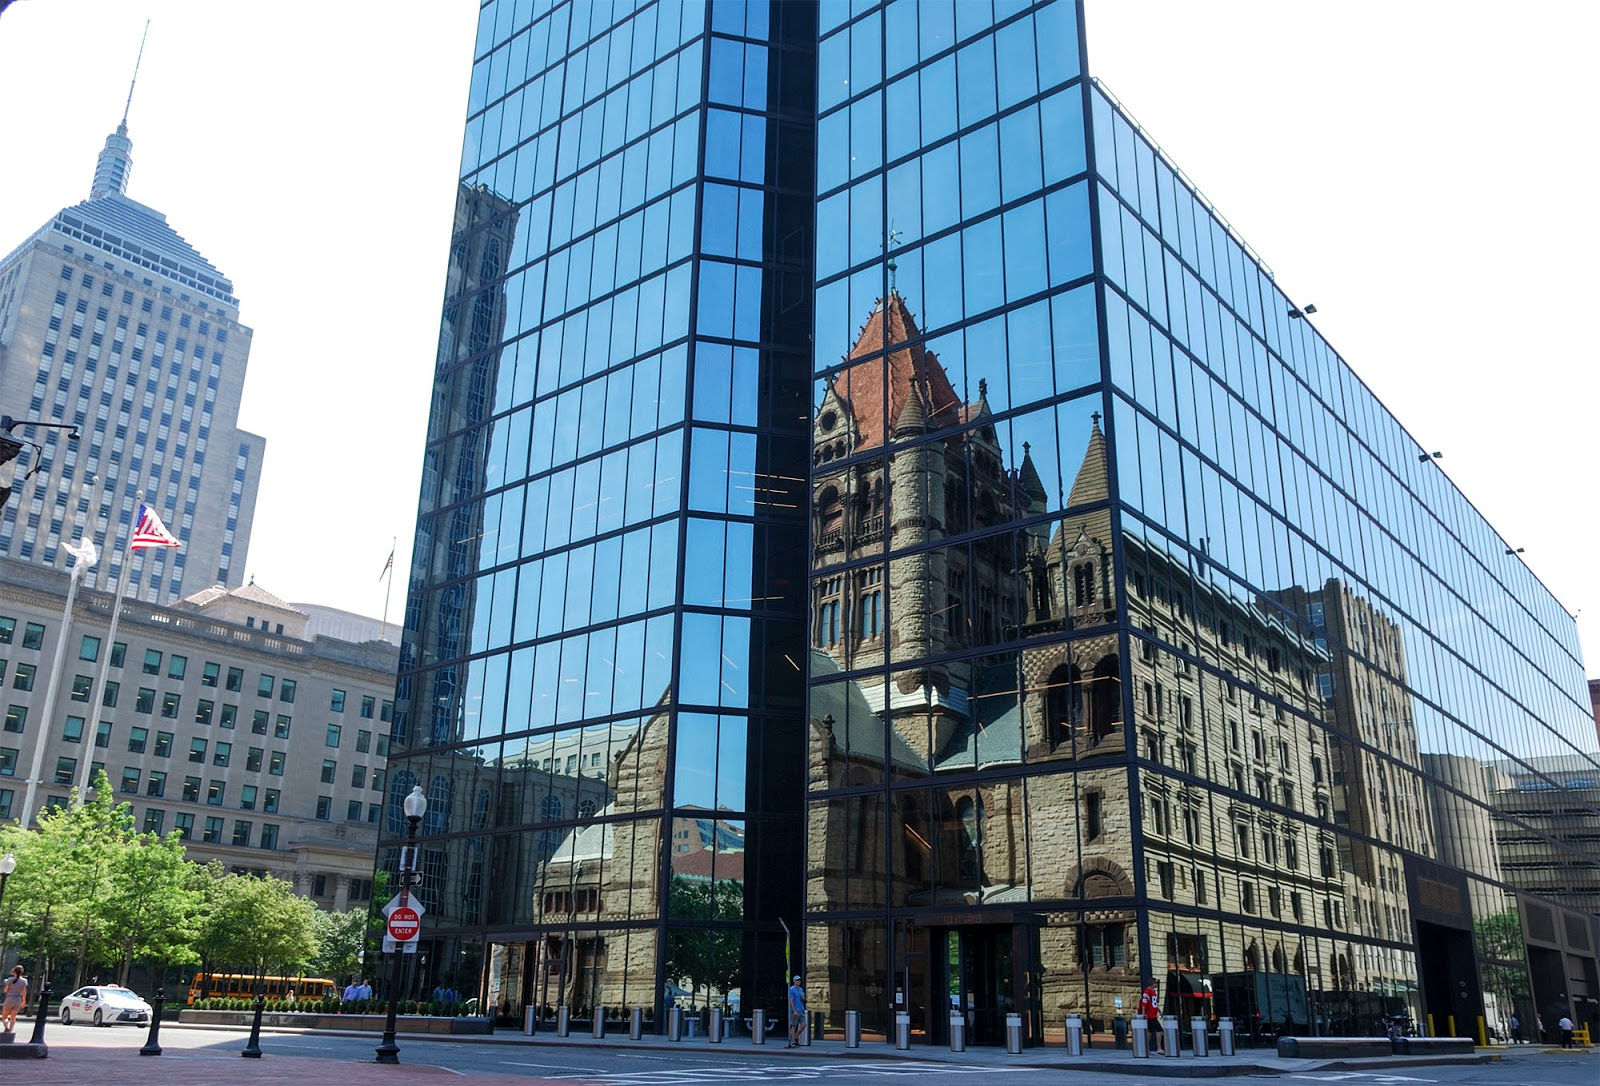 reflection hancock tower copley square trinity church boston itinerary plan guide tourism usa america park east coast